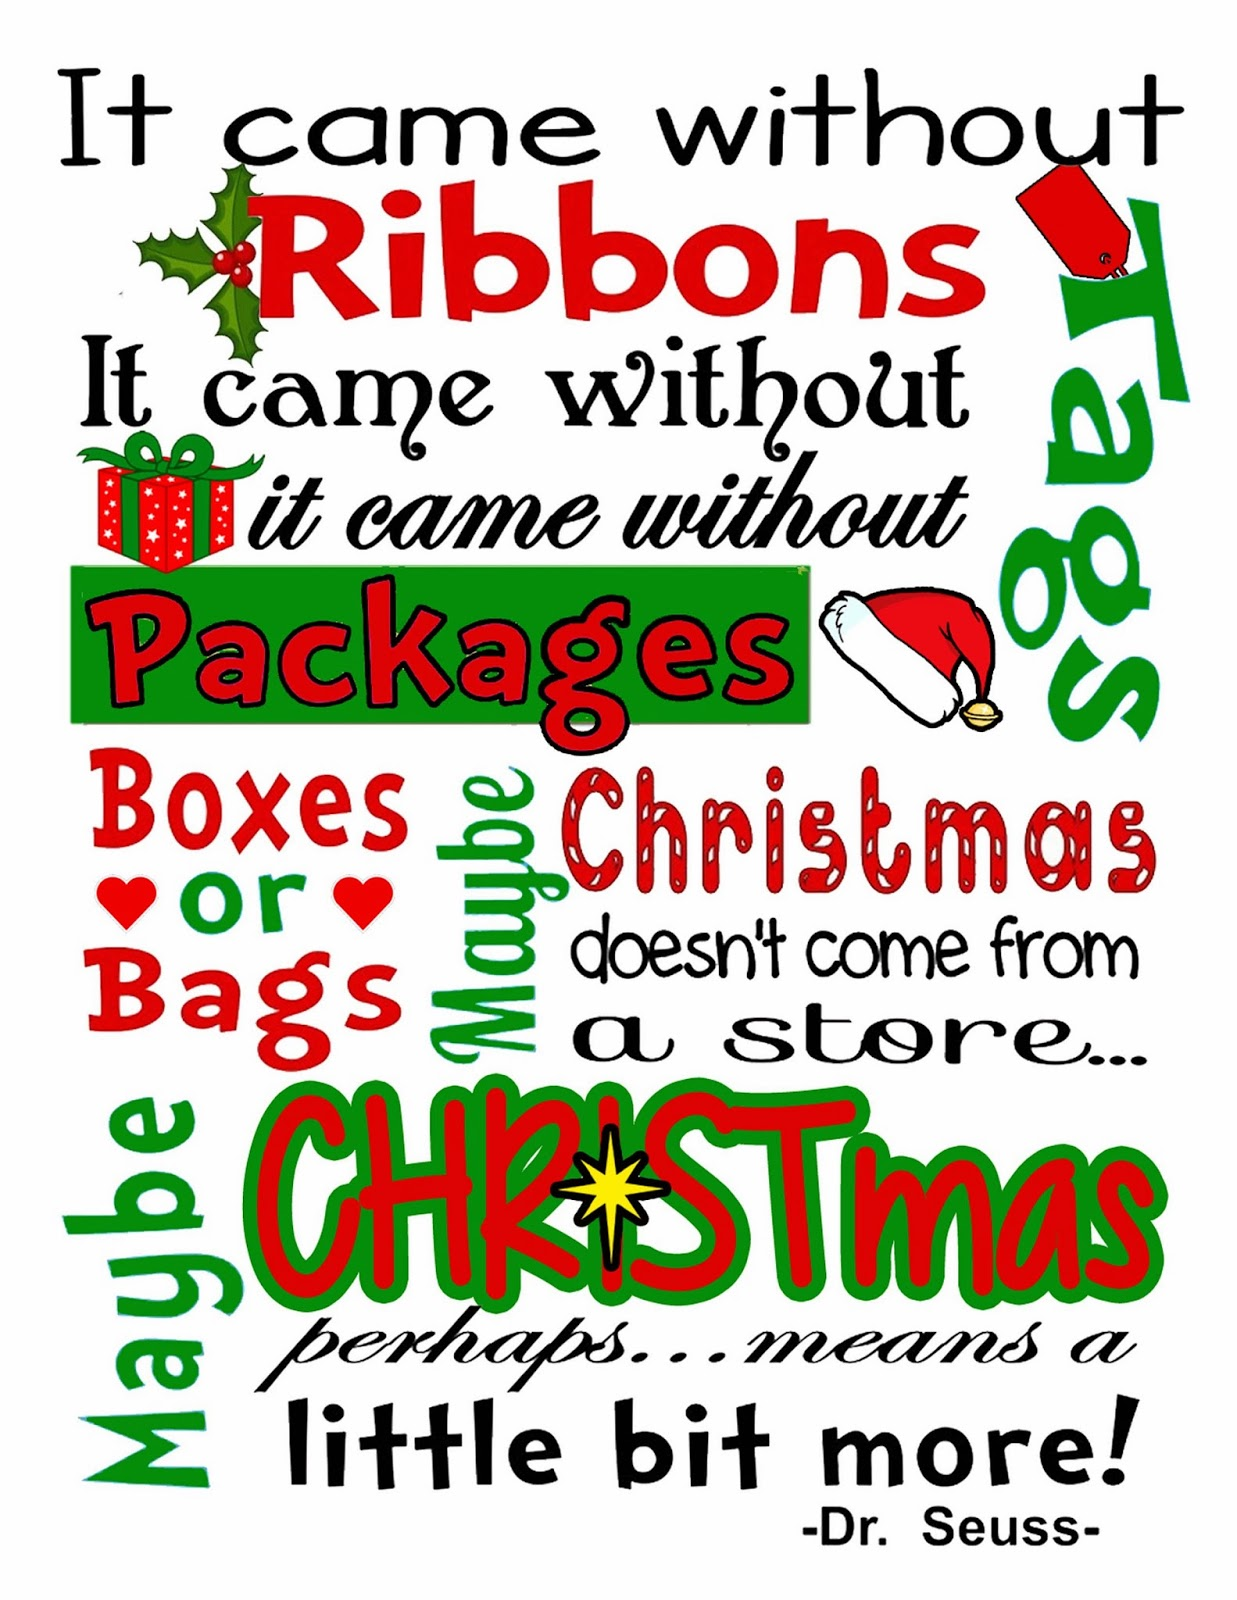 Dr Seuss Quotes About Friendship Christmas Quotesdr Seuss  The Best Collection Of Quotes